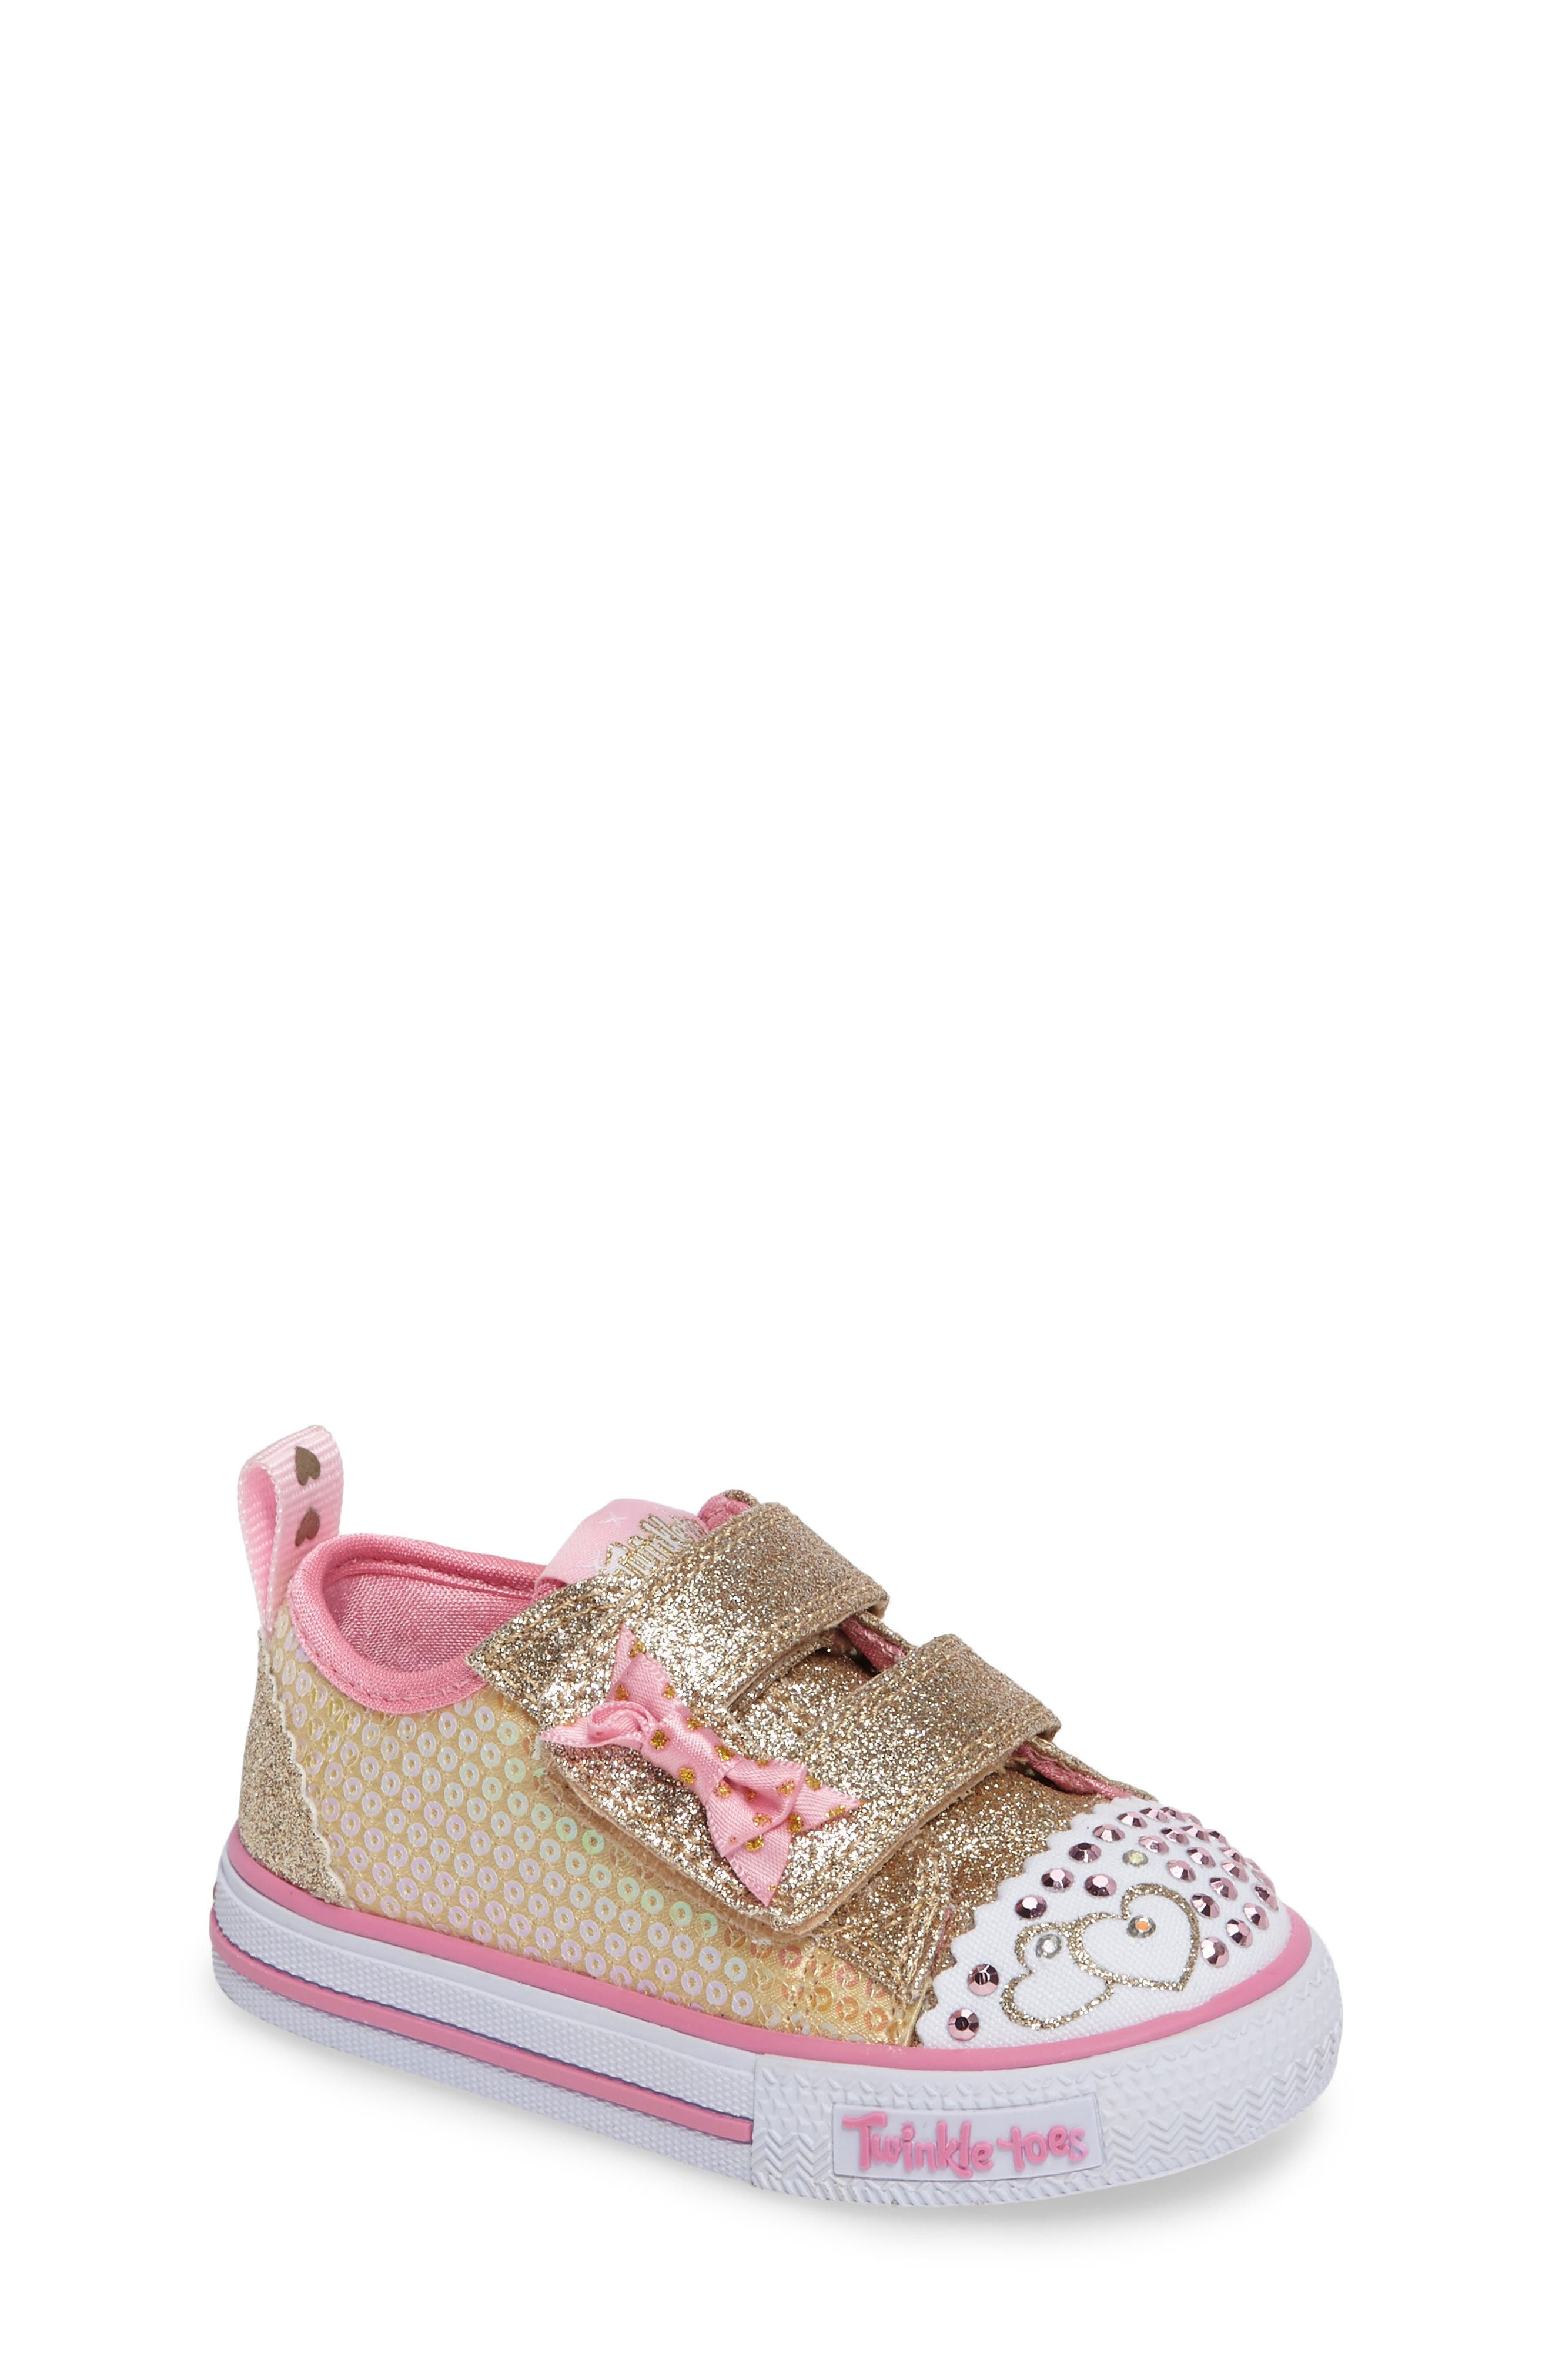 Shuffles - Itsy Bitsy Light-Up Sneaker,                             Main thumbnail 5, color,